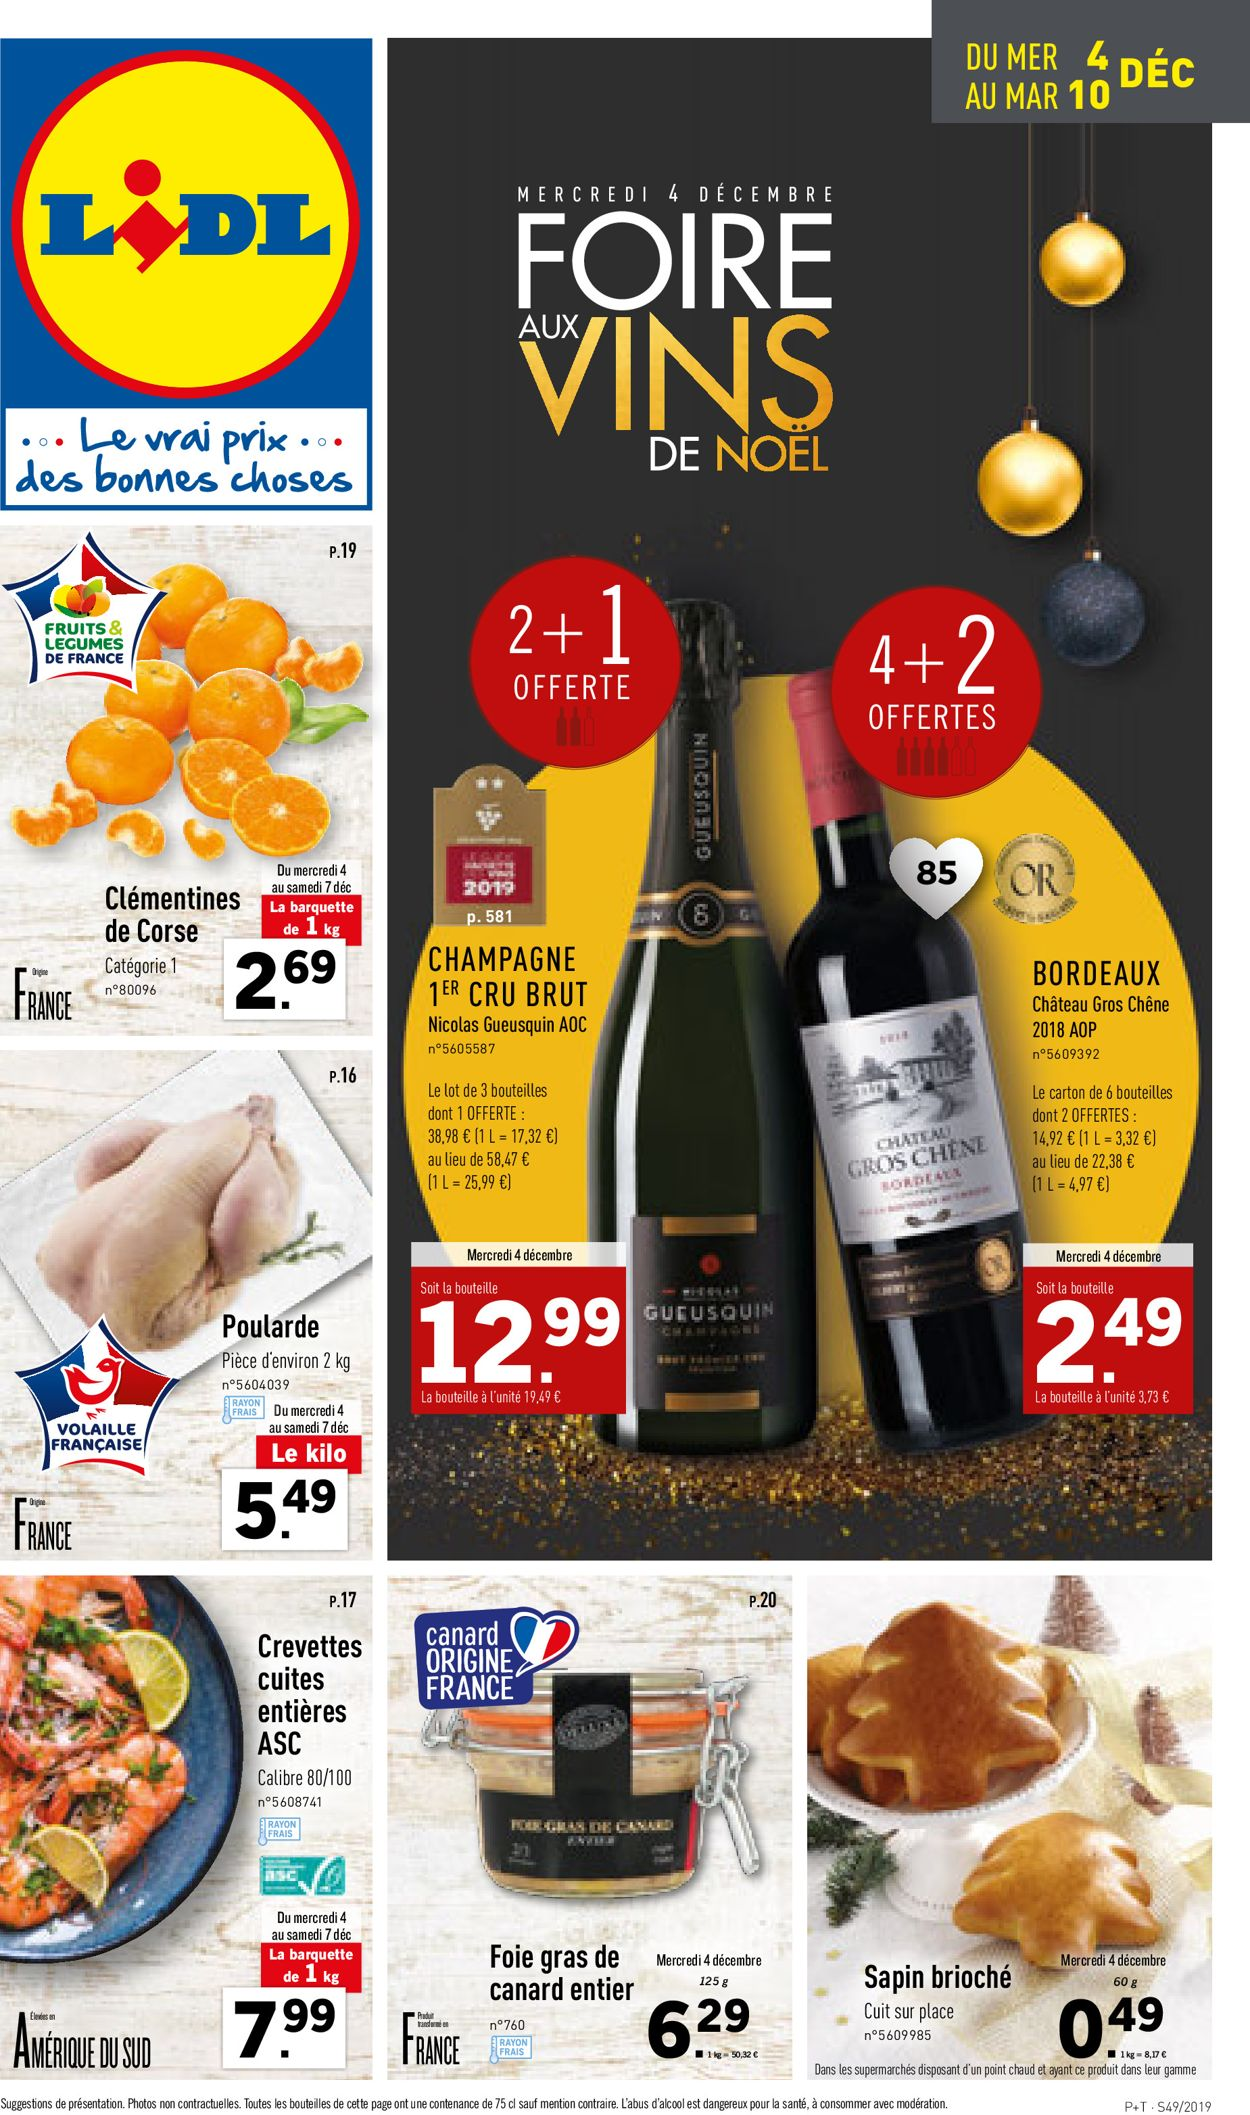 Lidl Catalogue - 04.12-10.12.2019